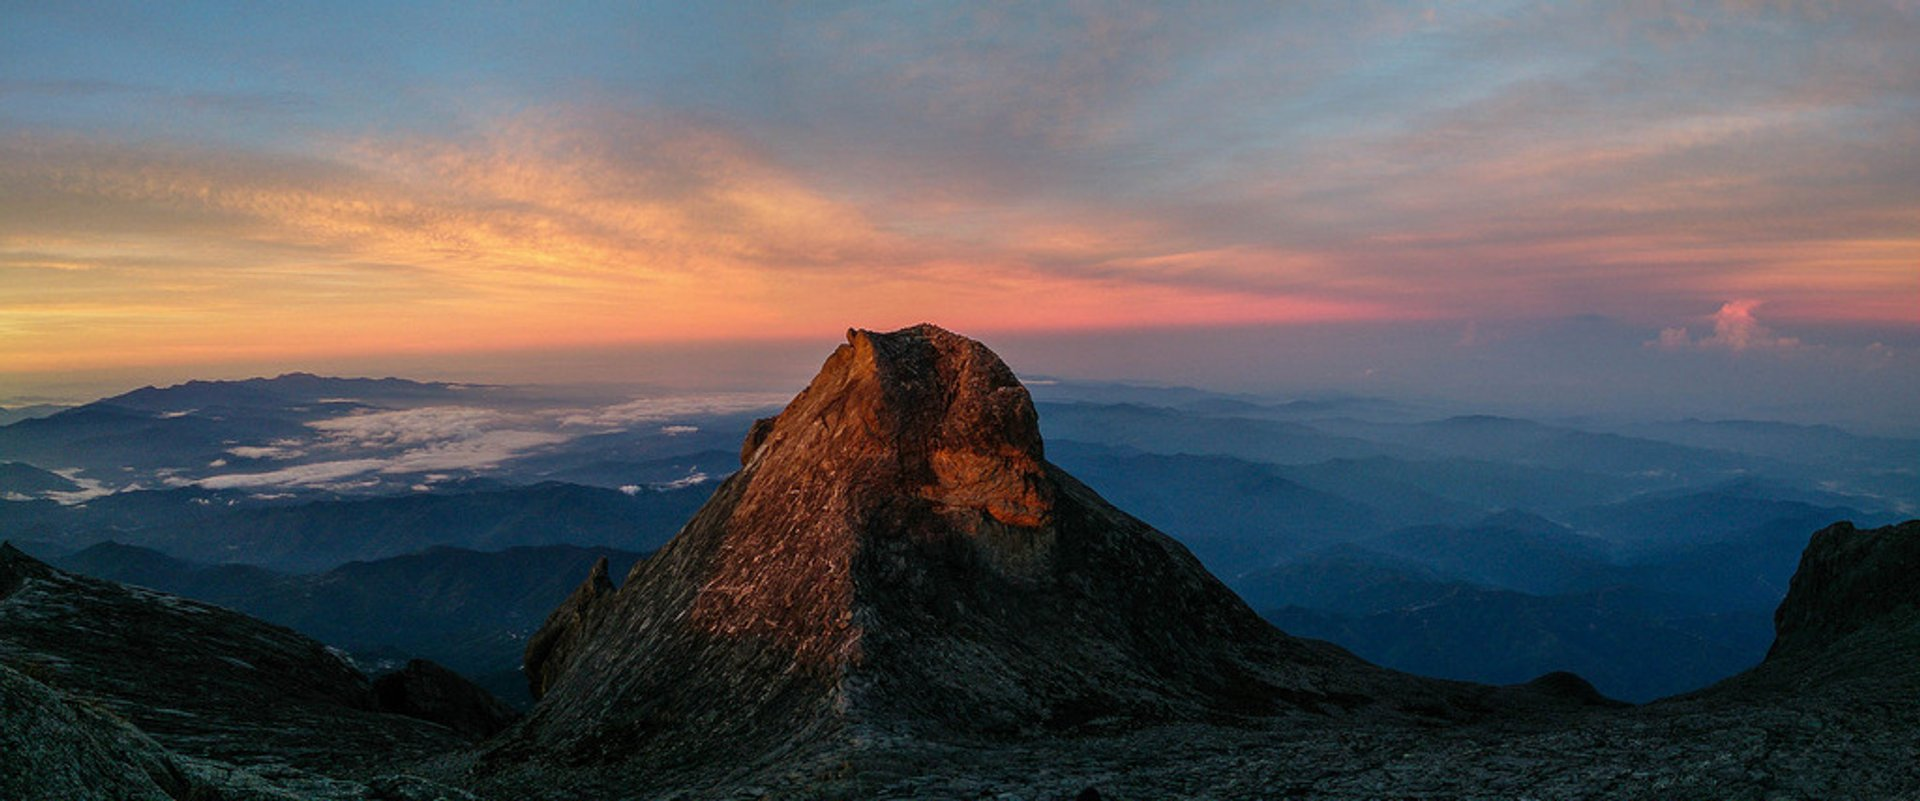 Sunrise on Mount Kinabalu in Borneo 2020 - Best Time